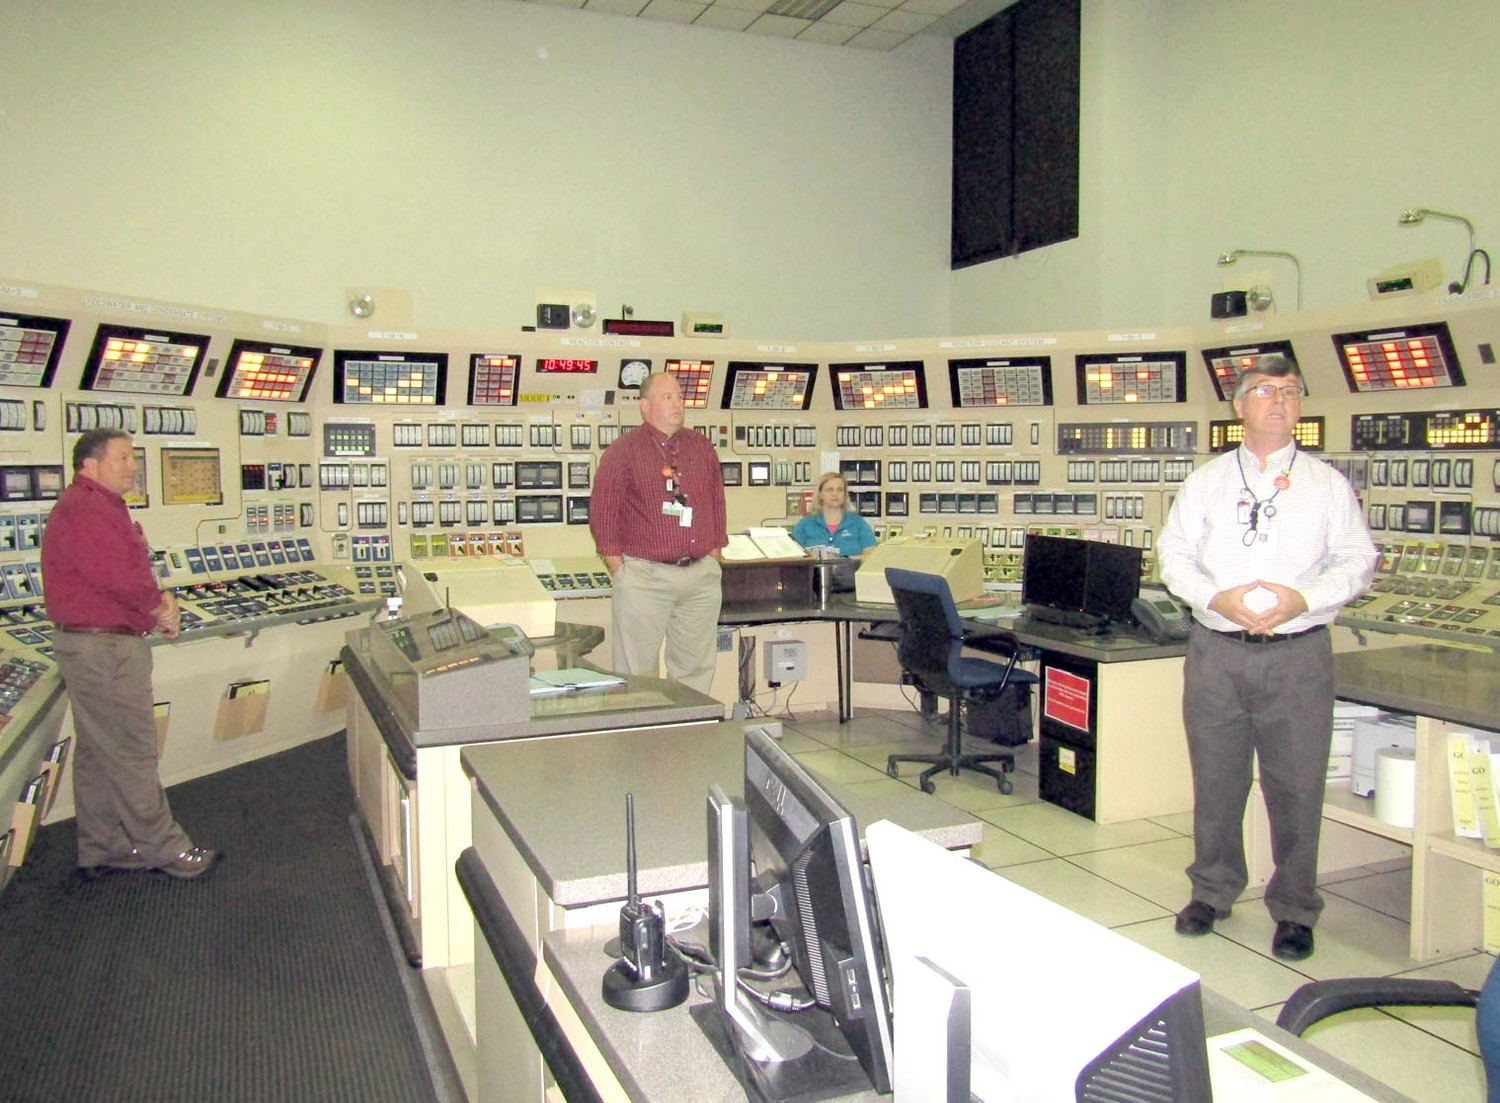 Harold Siercks, Sequoyah operations lead instructor, right, shows the plant's control room simulator where emergency scenarios are played out and practiced.